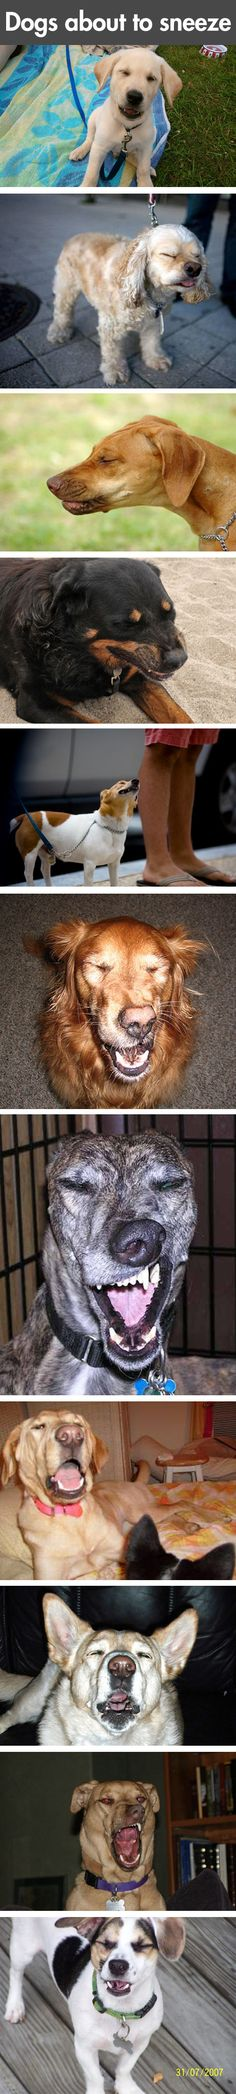 Cute images of dogs about to sneeze, I'm laughing so hard